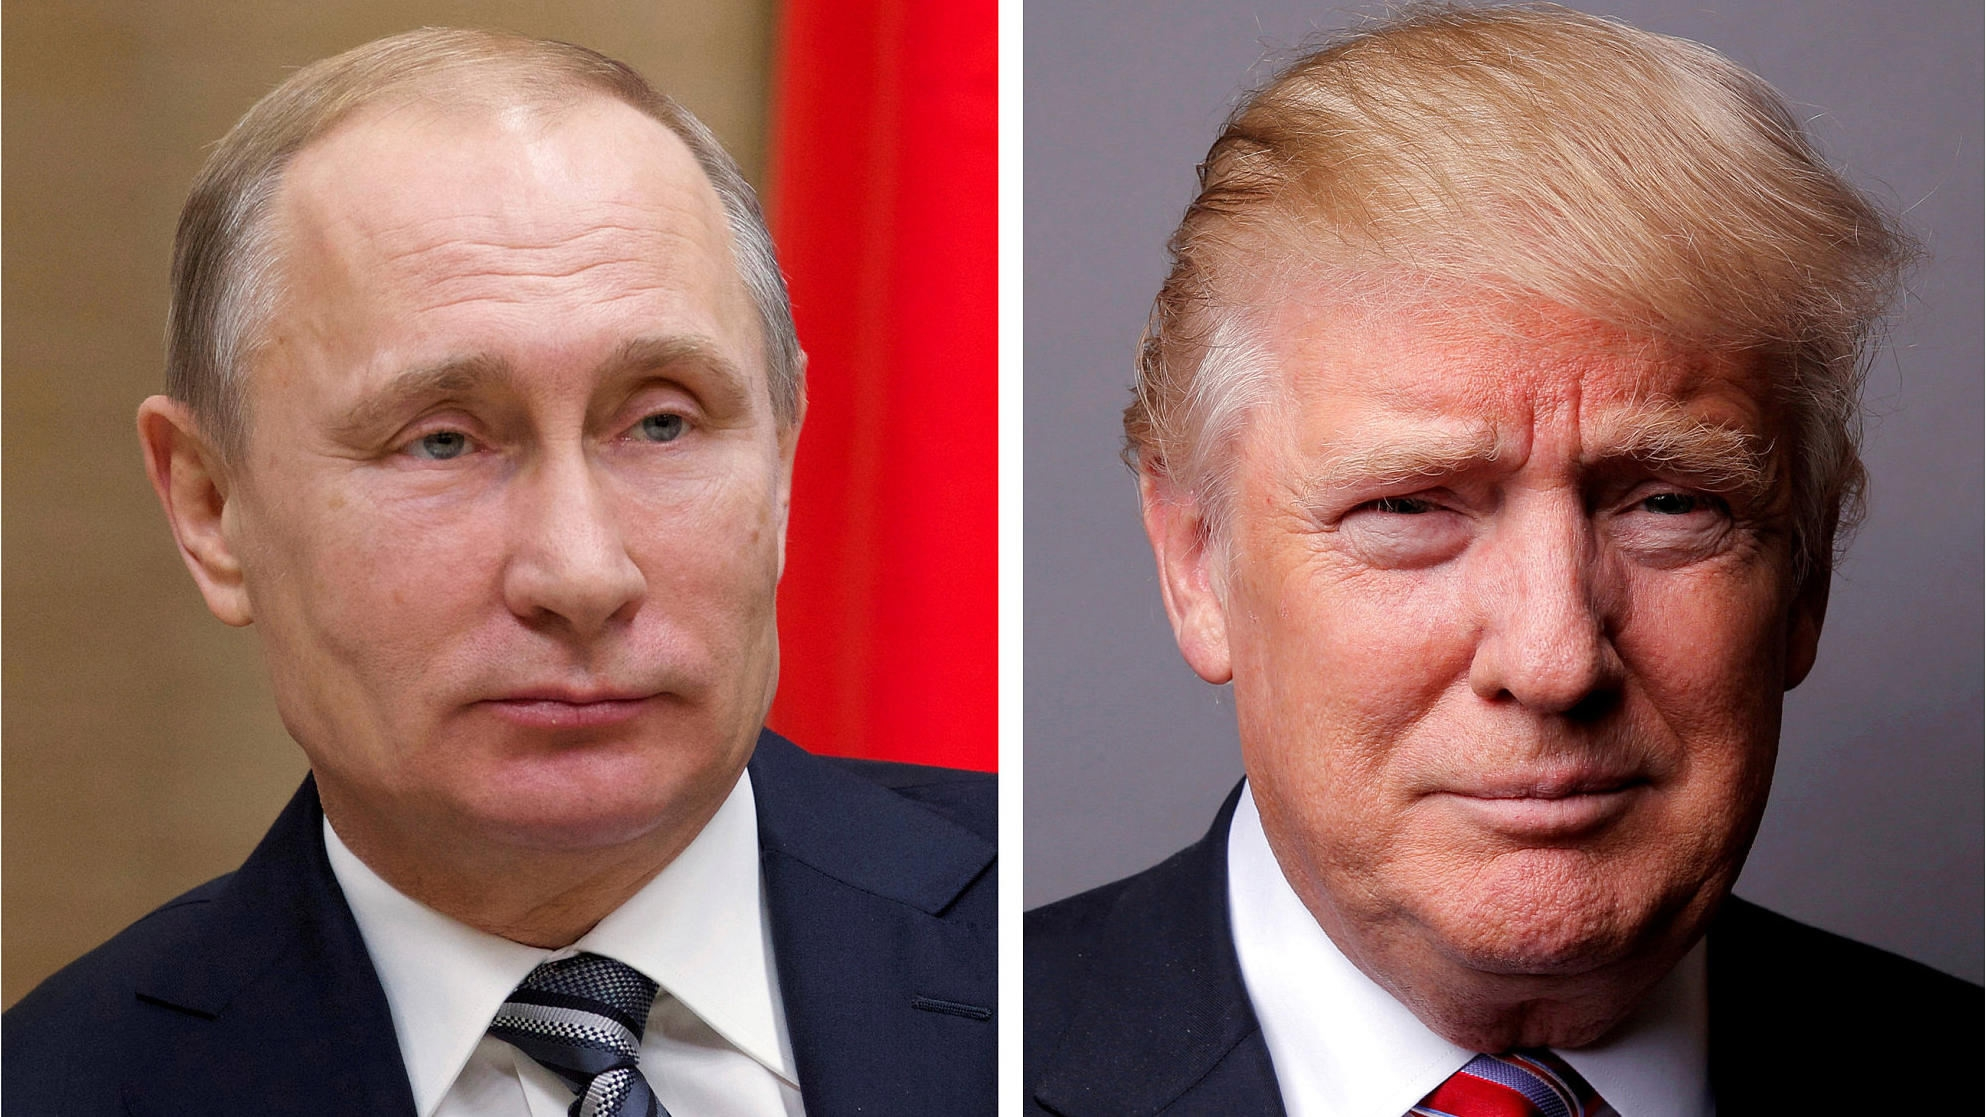 War between US and Russia in Syria? Possible, but not likely